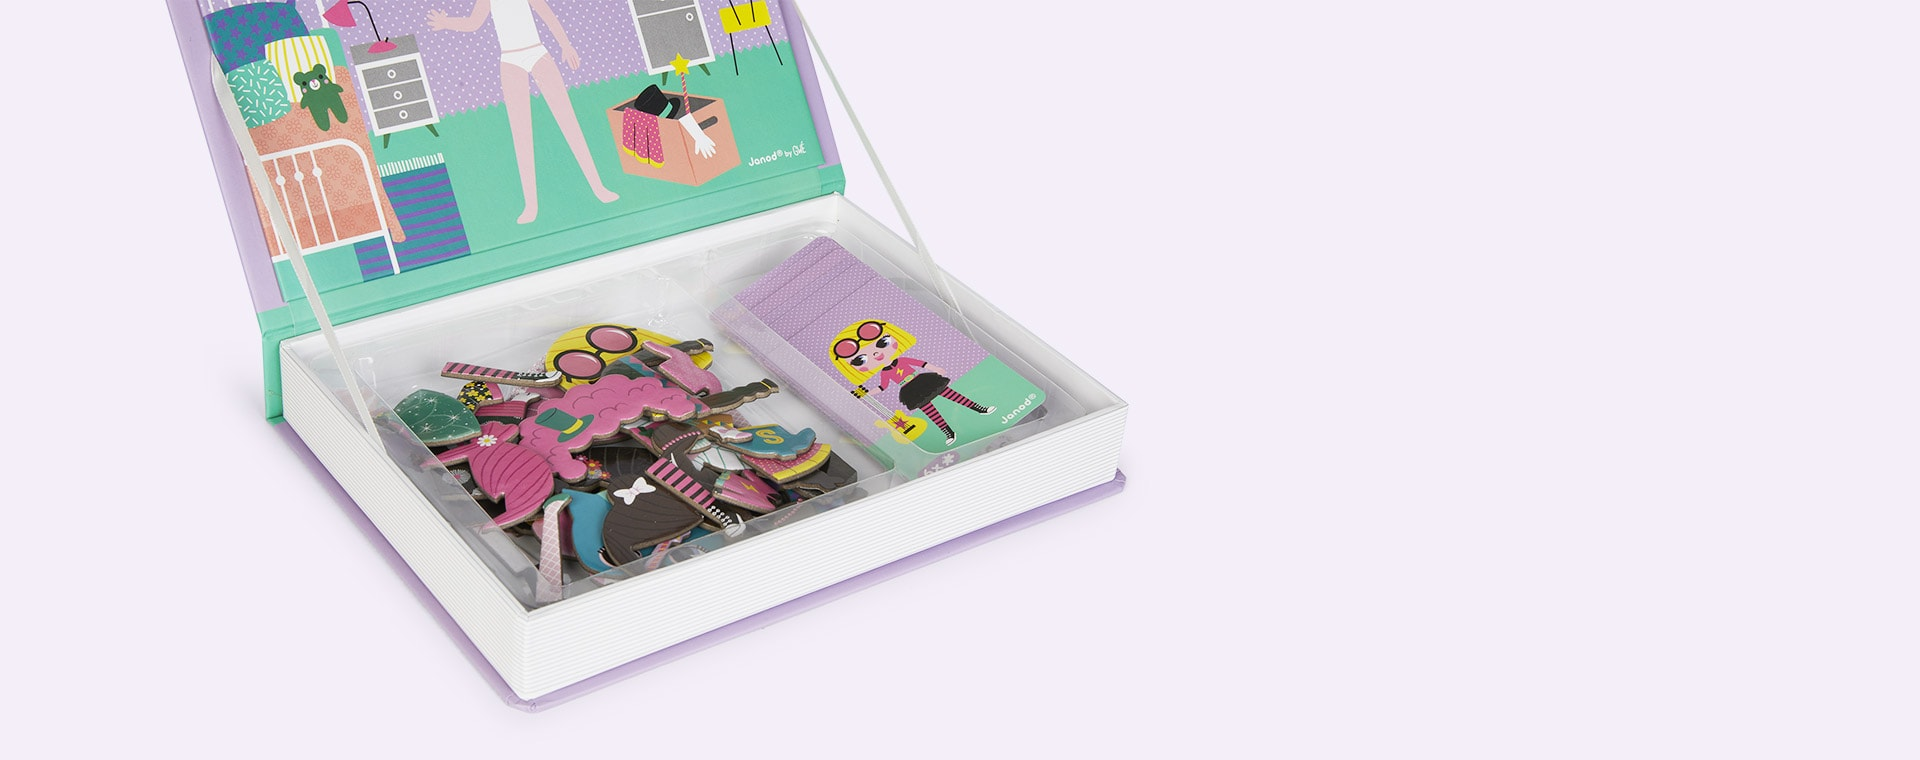 Girl's Costumes Janod Magnetibook Educational Toy